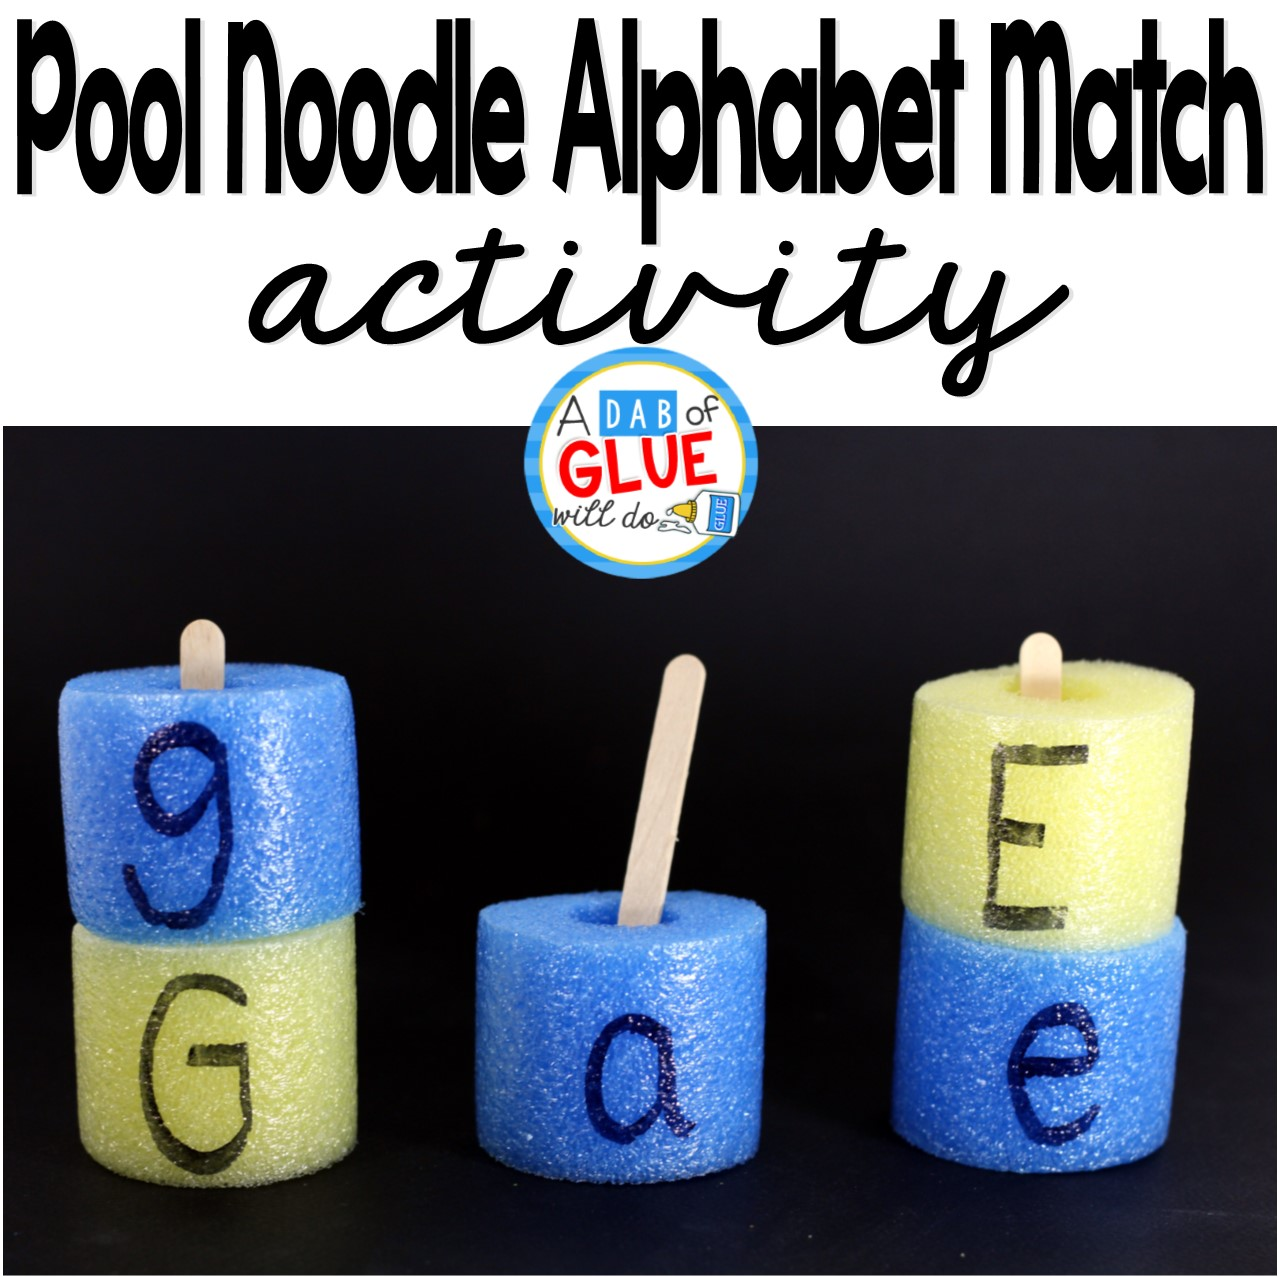 Summertime is almost over, which means pool noodles will be on SALE everywhere so why not go grab a few for cheap and use them for an educational purpose?! We have been working on letters the last few weeks before my oldest heads off to preschool and I thought the pool noodle alphabet match would be a great way for her to practice matching uppercase and lowercase letters.